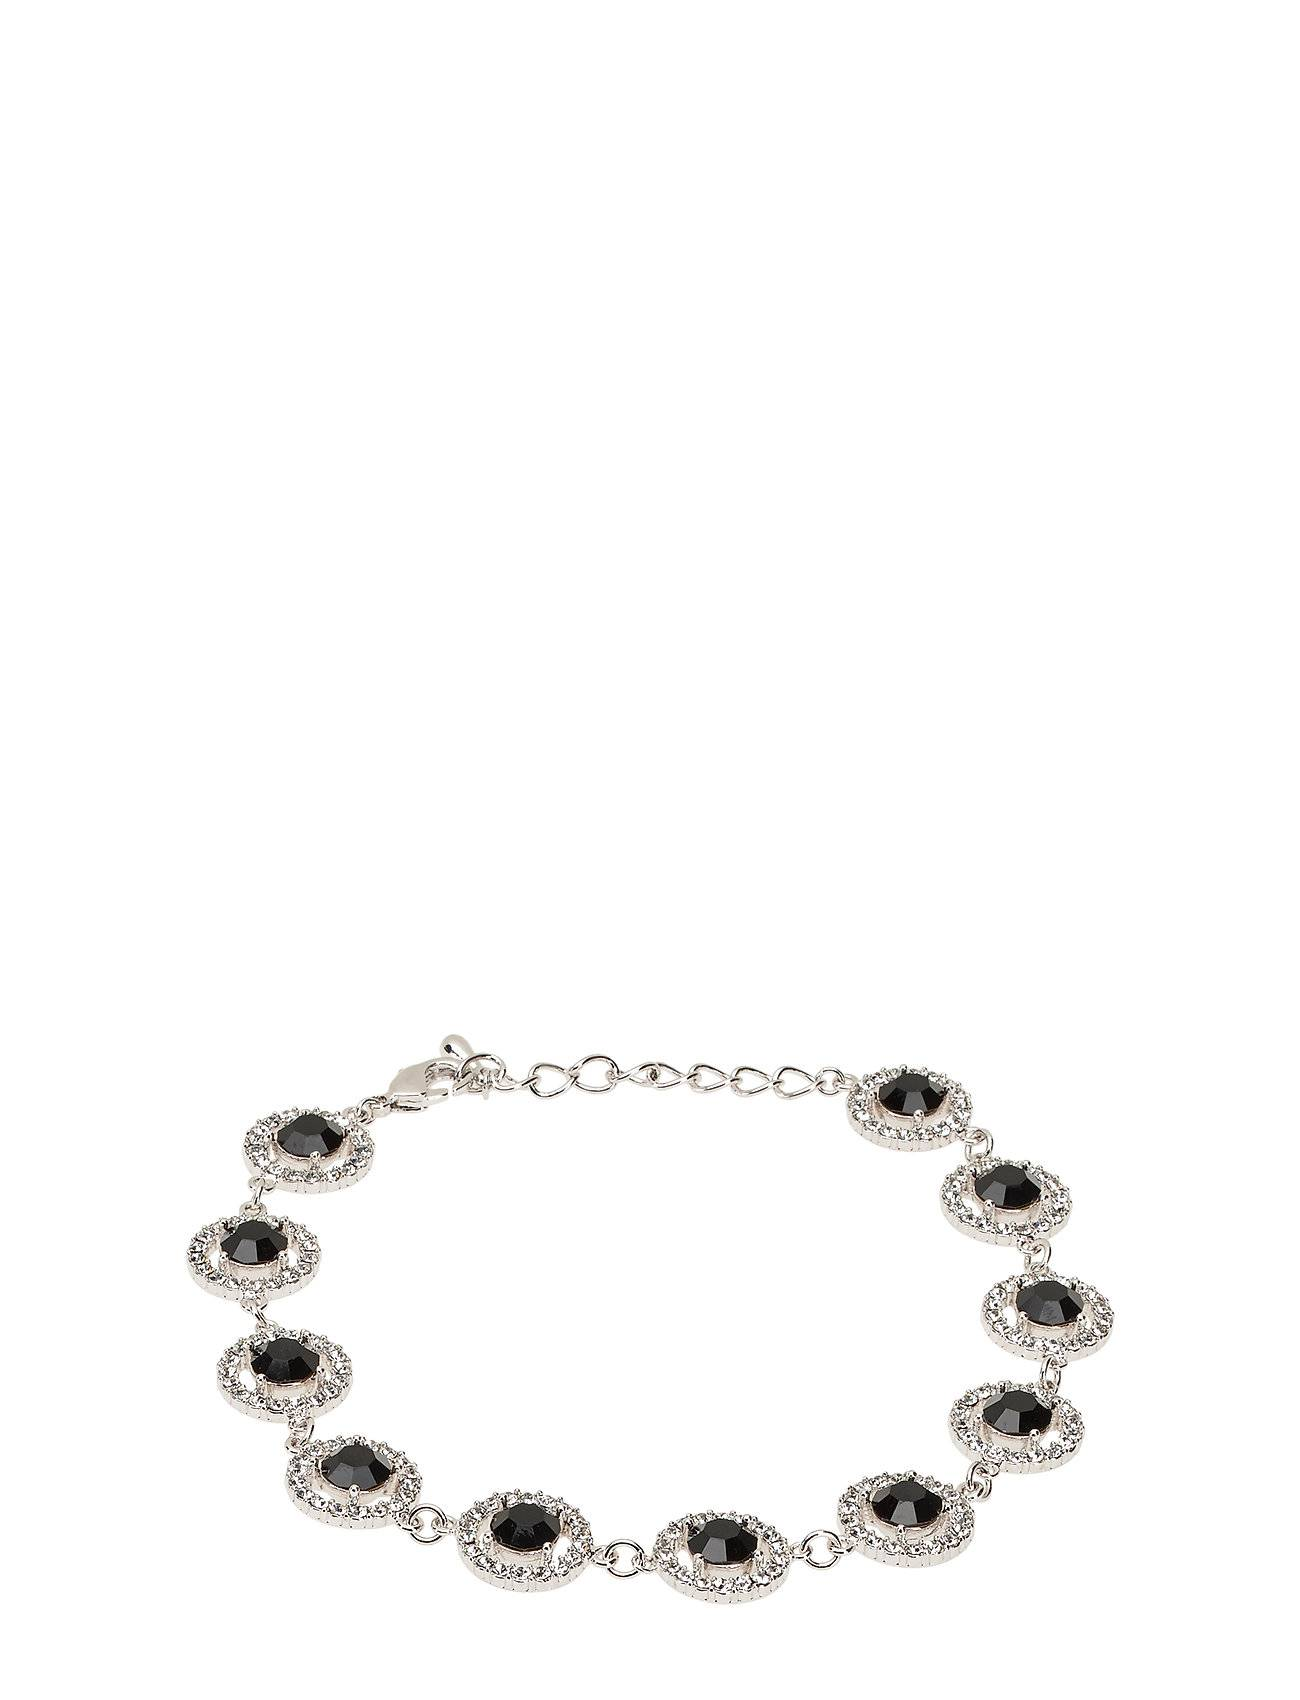 LILY AND ROSE Miranda Bracalet - Jet Accessories Jewellery Bracelets Chain Bracelets Musta LILY AND ROSE